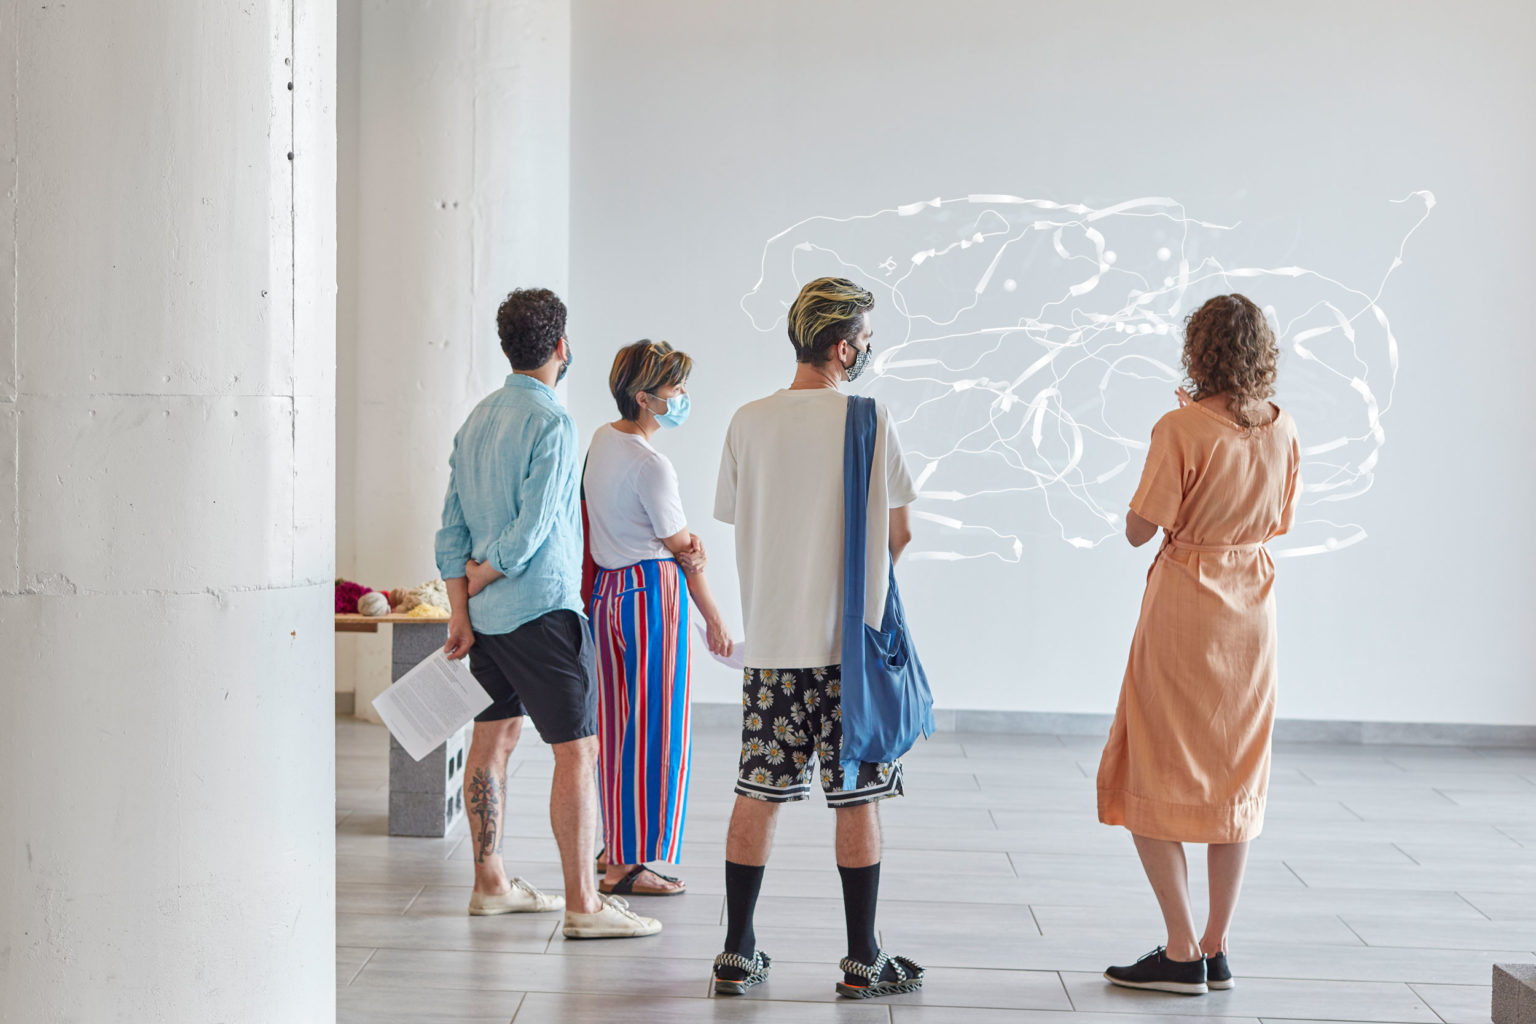 picture of people standing in a museum looking at an exhibit of white lines on a grey wall.